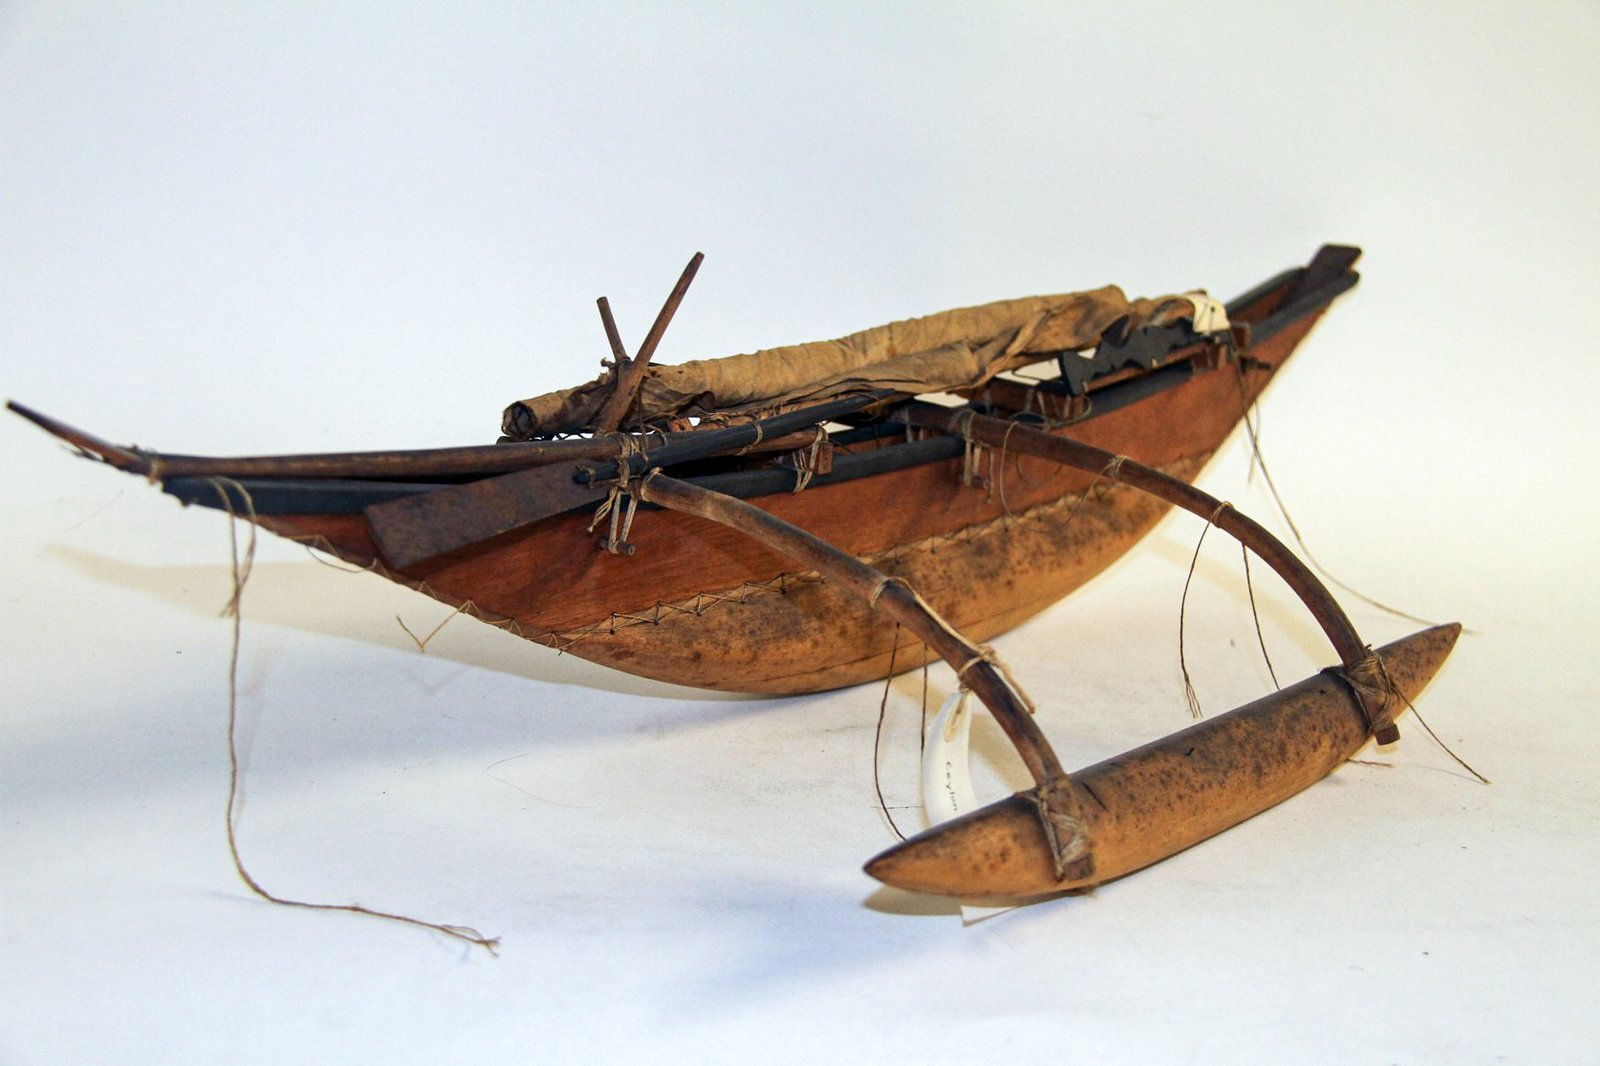 Canoe model from Sri Lanka